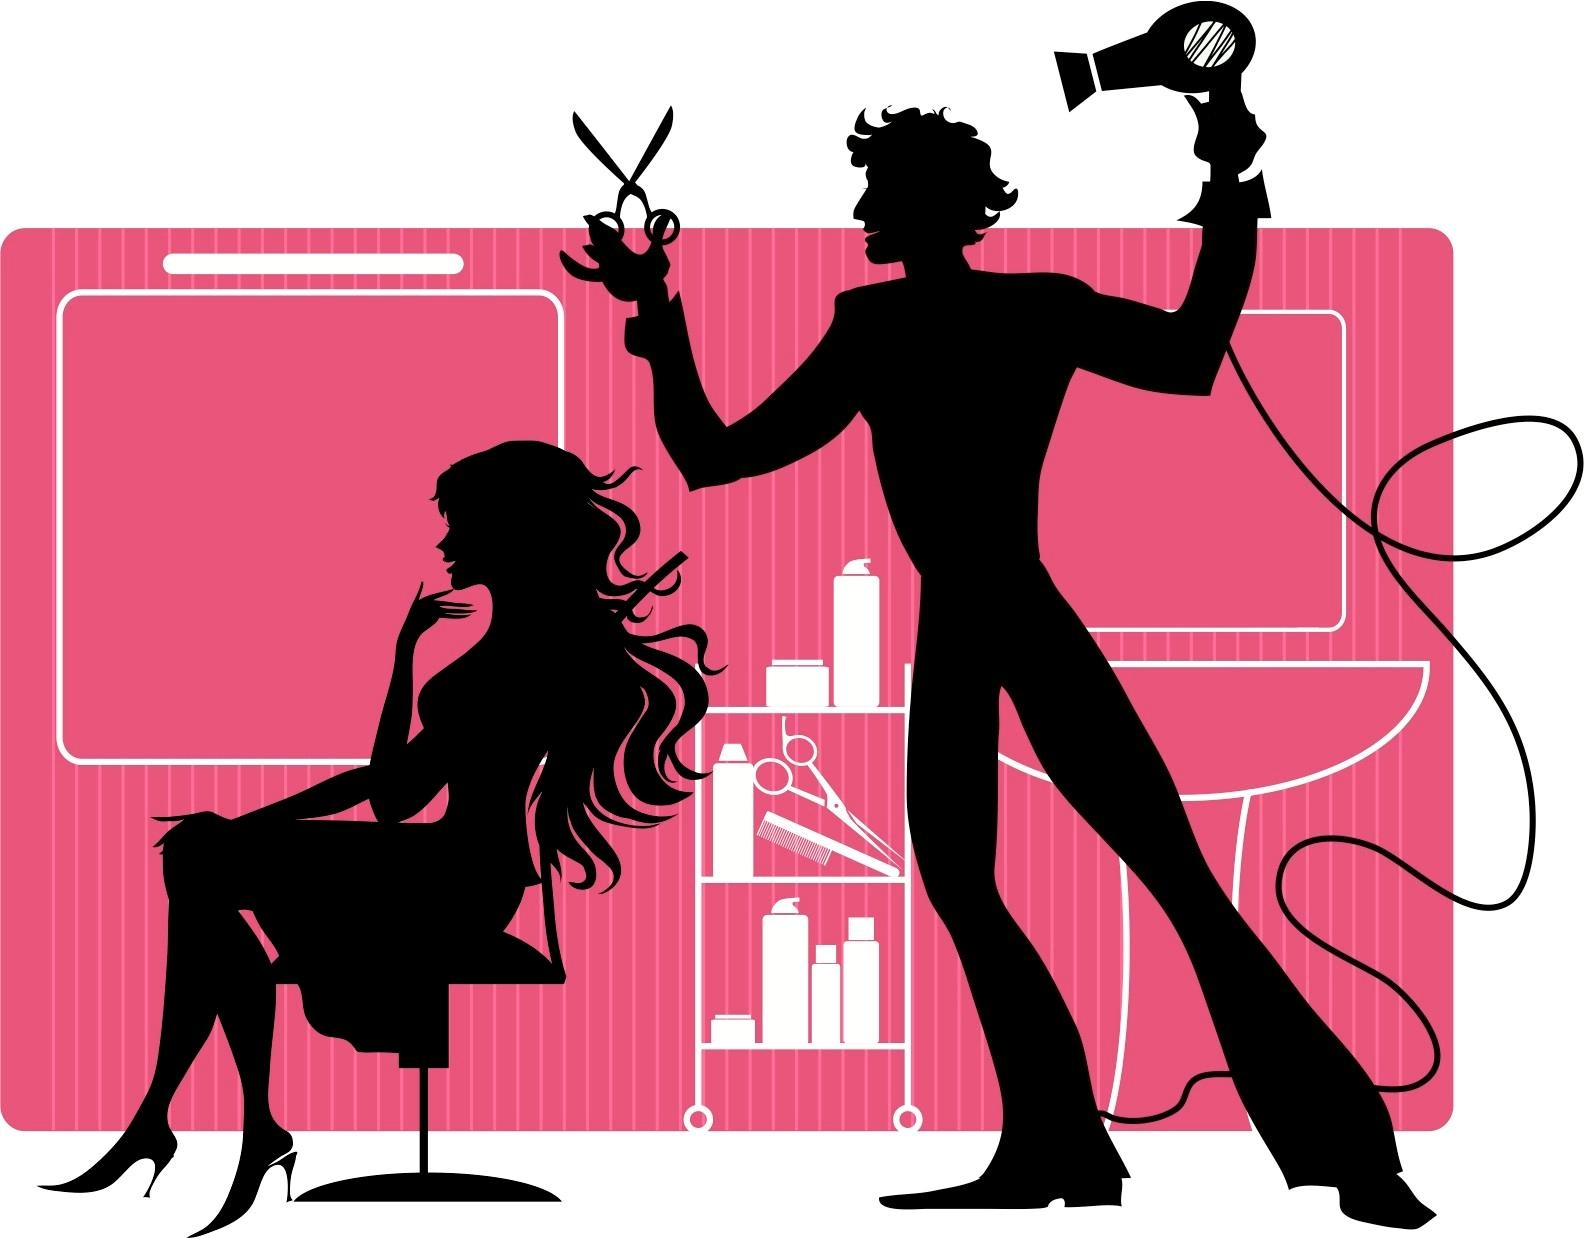 Hairdresser clipart pink. New hair stylist design